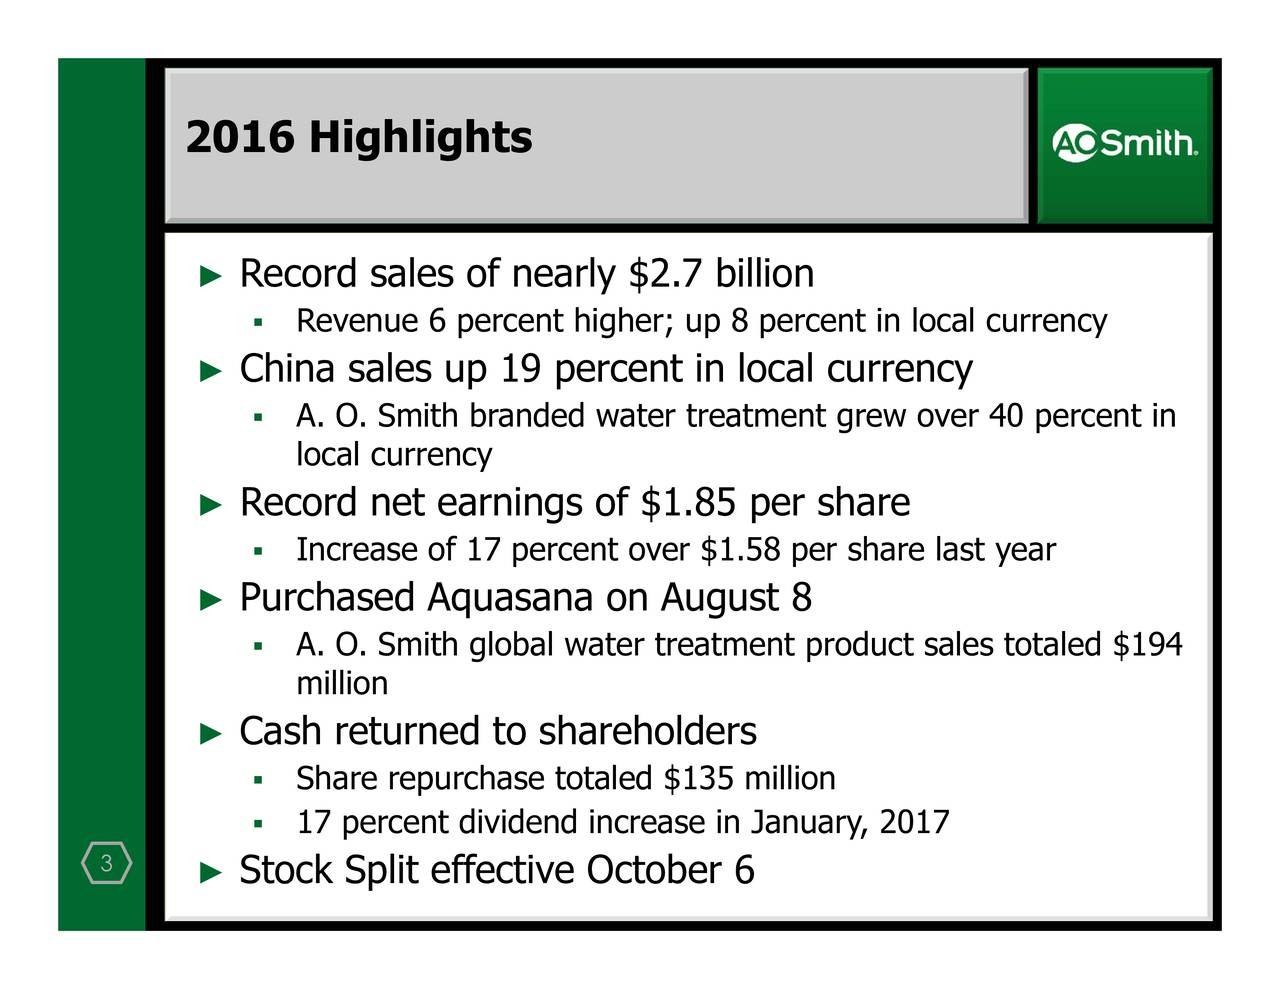 Record sales of nearPrlr$ha.7eailiquaturnakdSnoAthaufshe 2016 Highlights 3